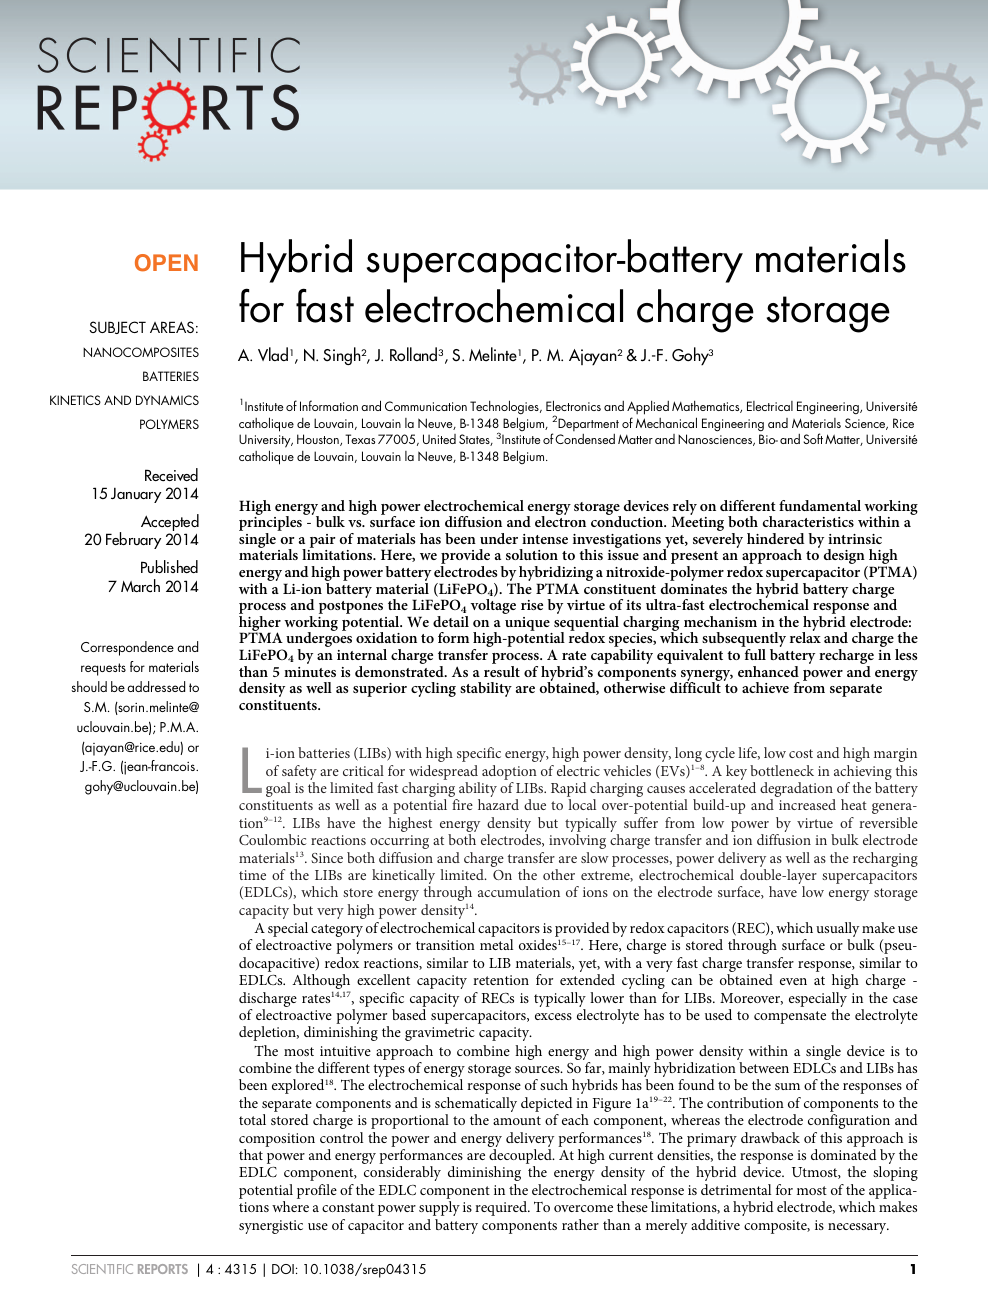 Hybrid supercapacitor-battery materials for fast electrochemical